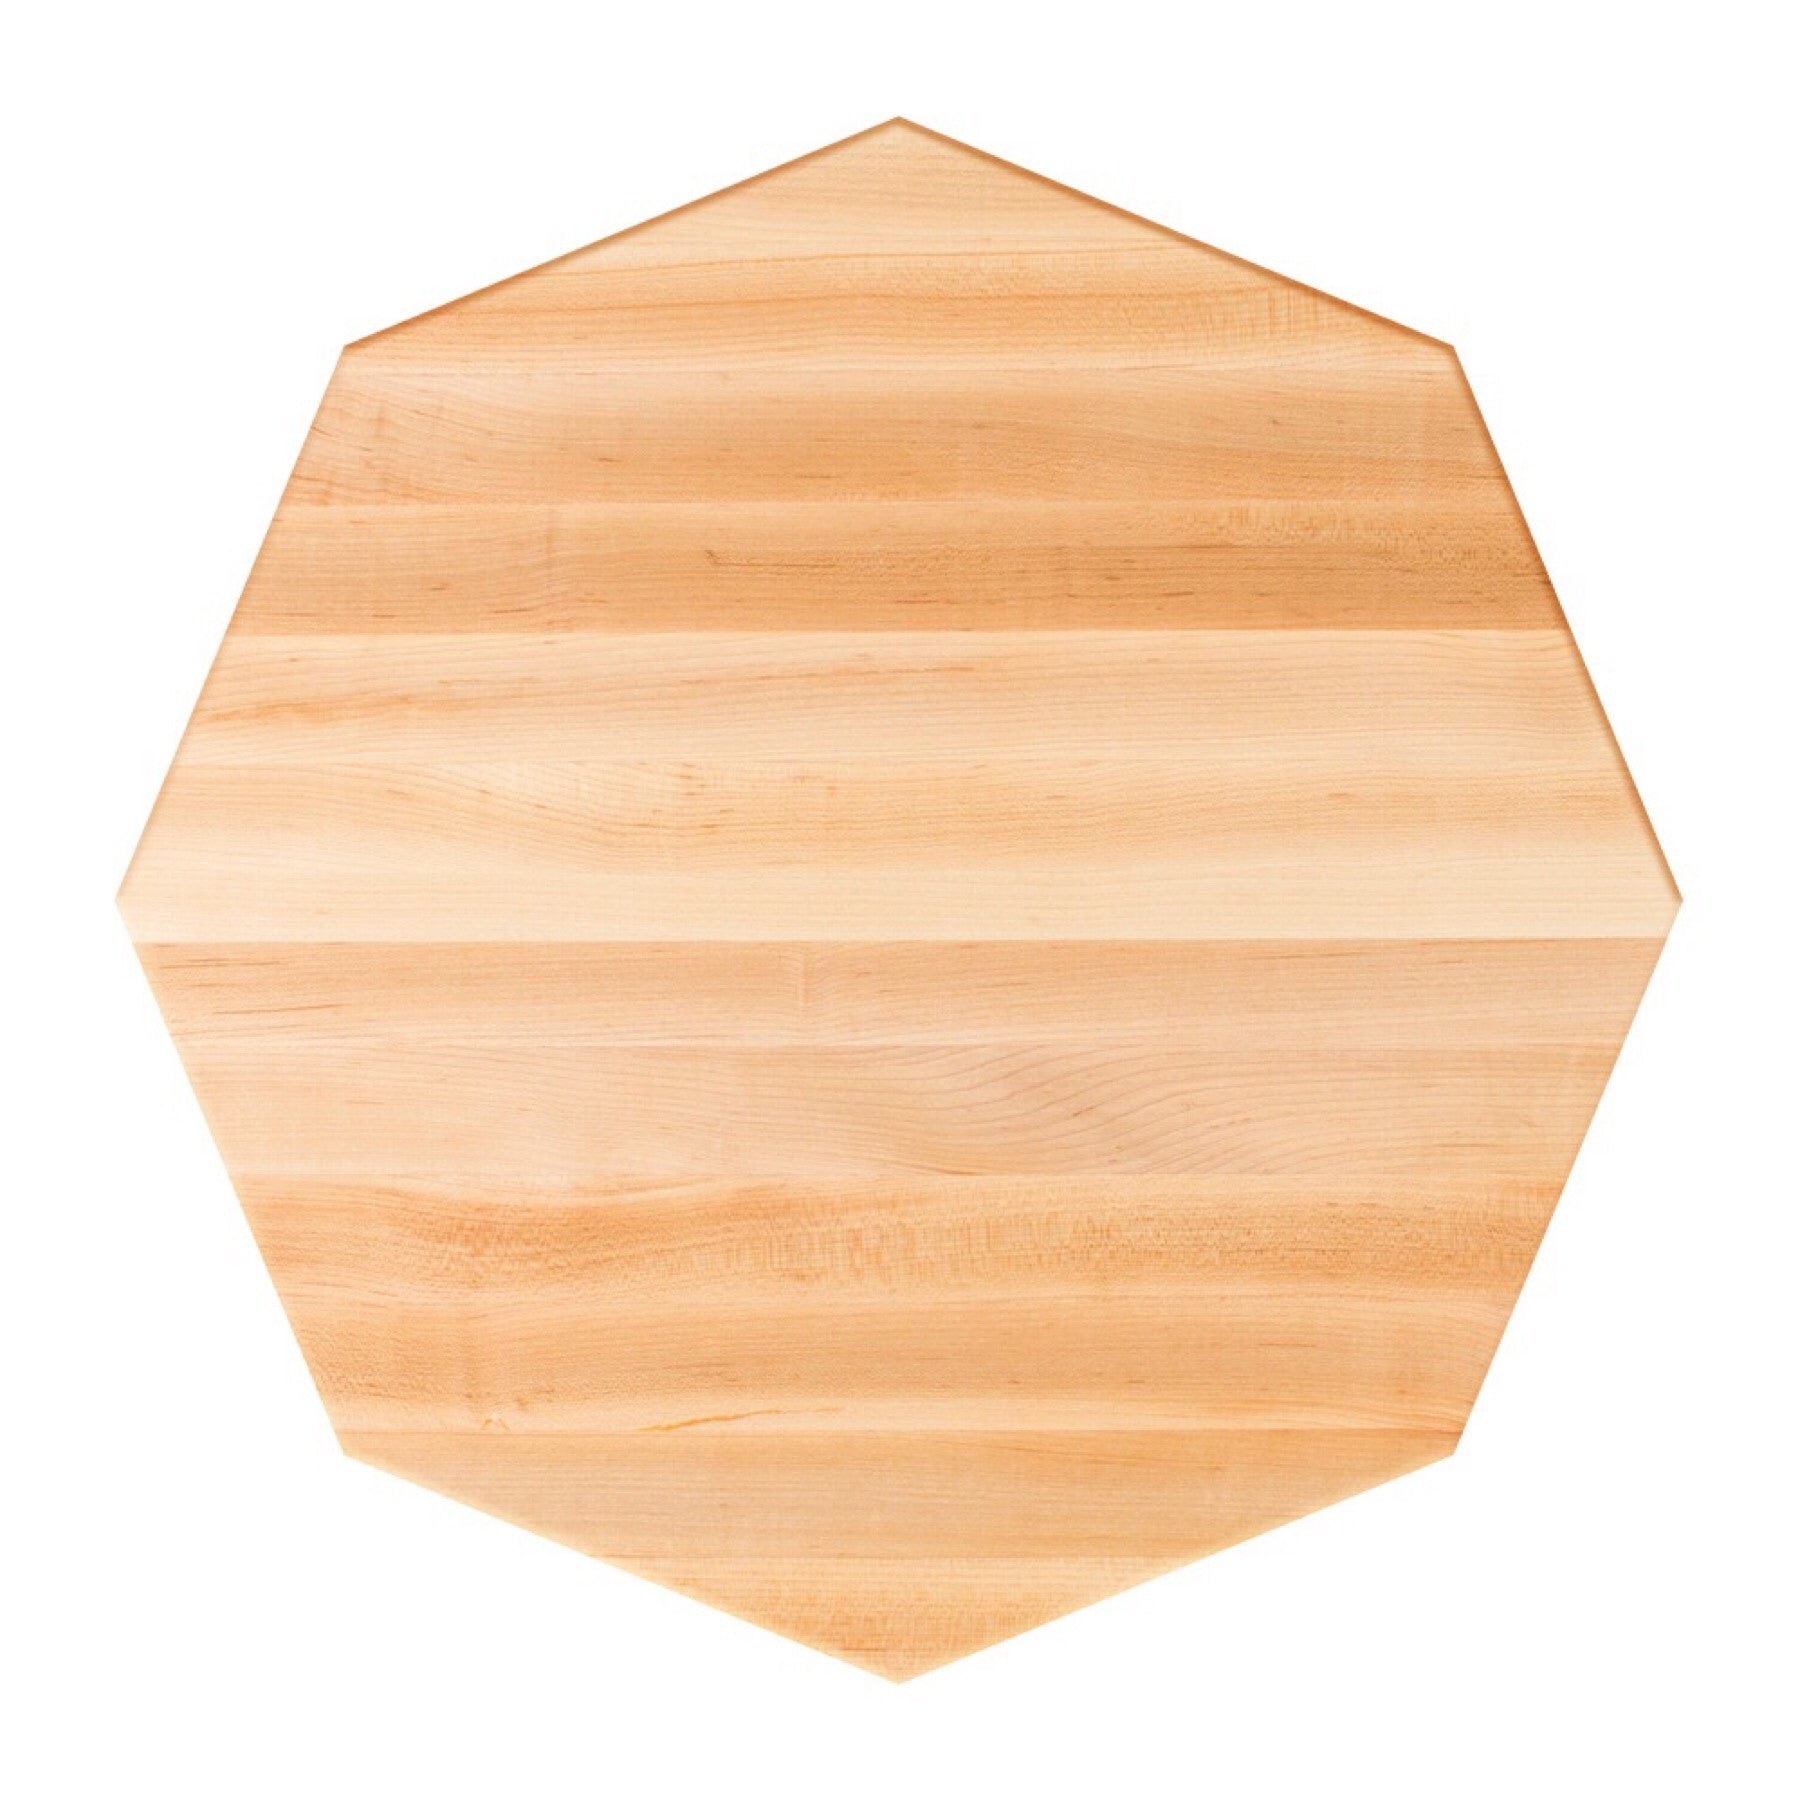 John Boos Octagonal RTSM Soft Maple Butcher Block Table Top - Stainable